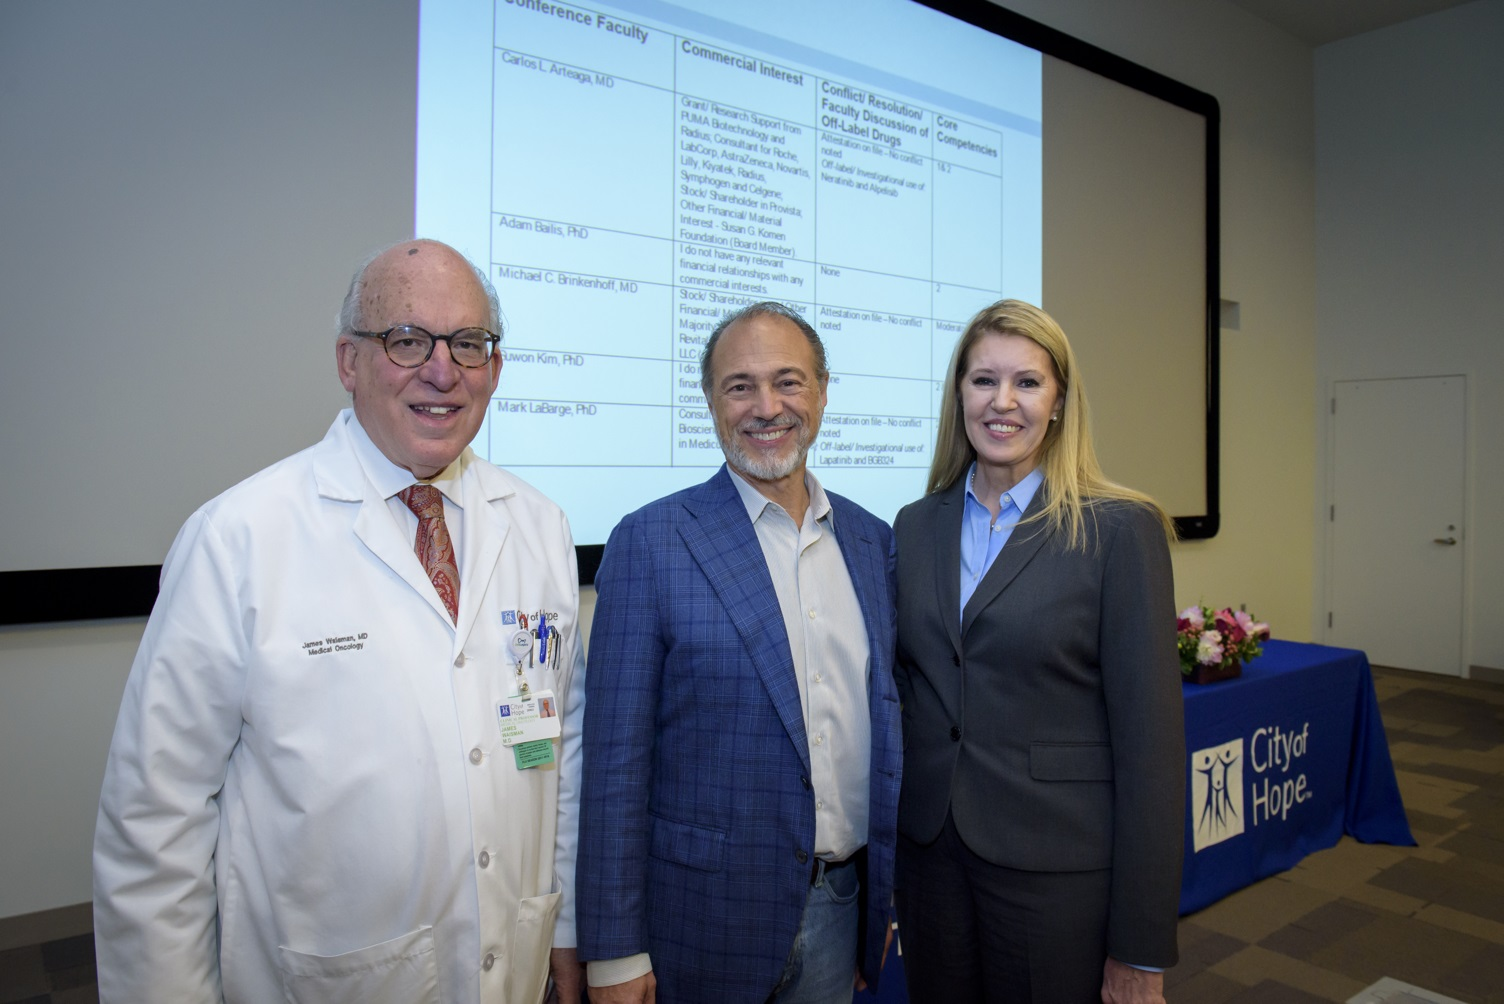 From left to right: James R. Waisman, M.D., Clinical Professor in the Department of Medical Oncology & Therapeutics Research at City of Hope; Michael Brinkenhoff, M.D., Founder & CEO, RevitaLash Cosmetics; Linda Malkas, Ph.D., Deputy Director of Basic Research, Comprehensive Cancer Center at City of Hope